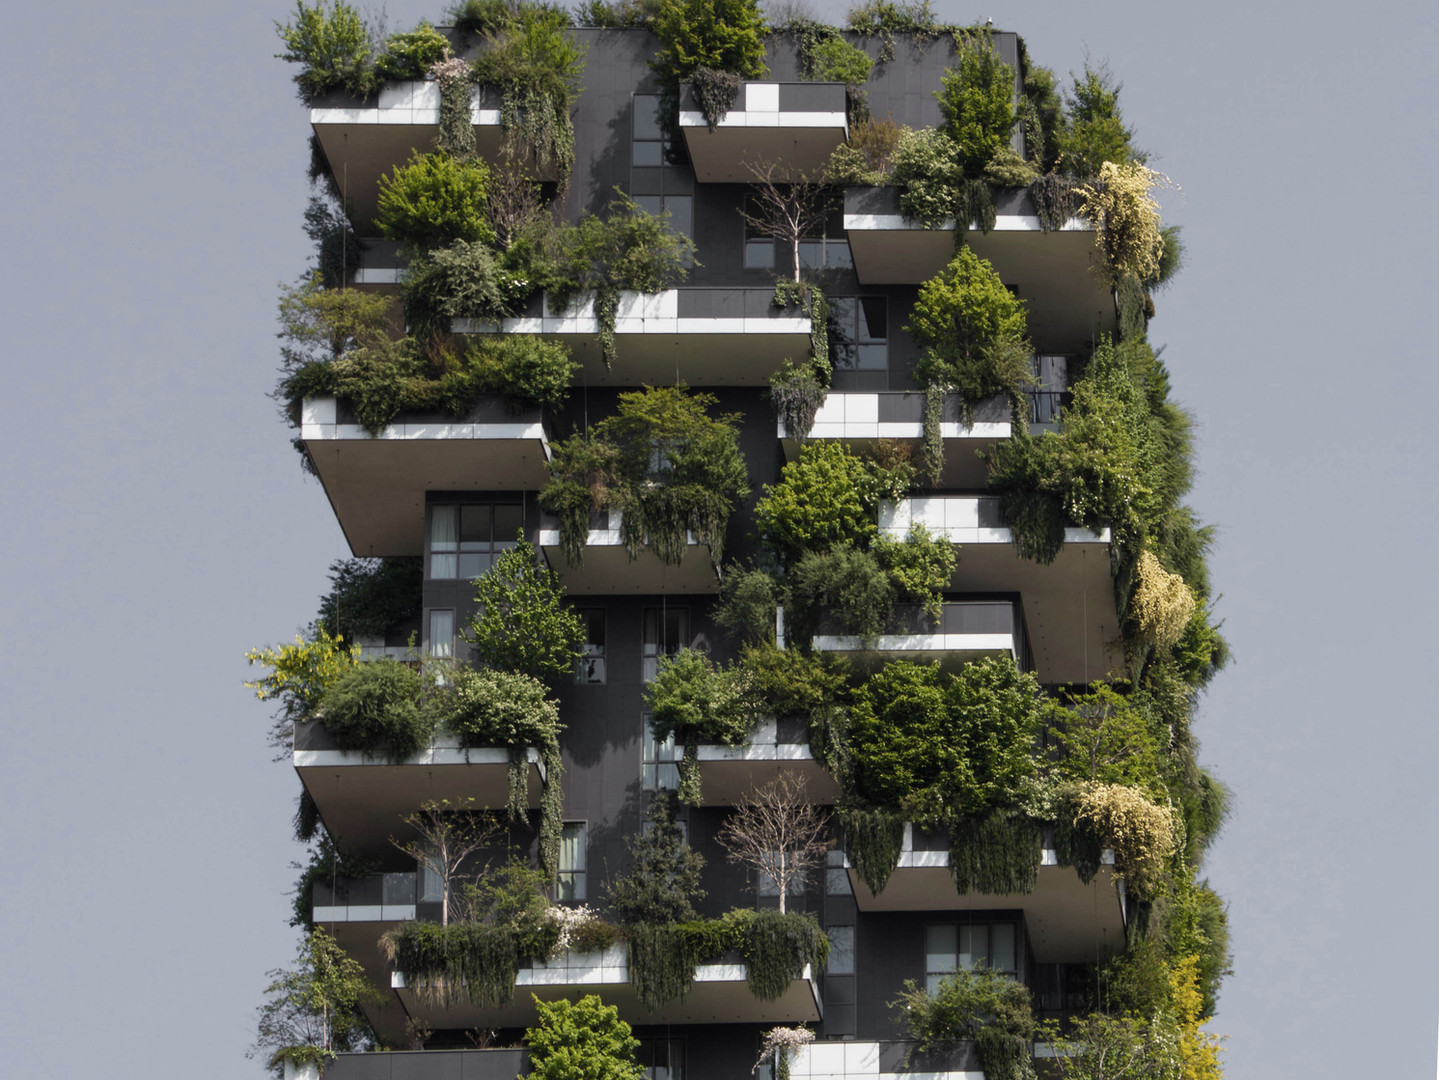 Green terraces of an ecological building